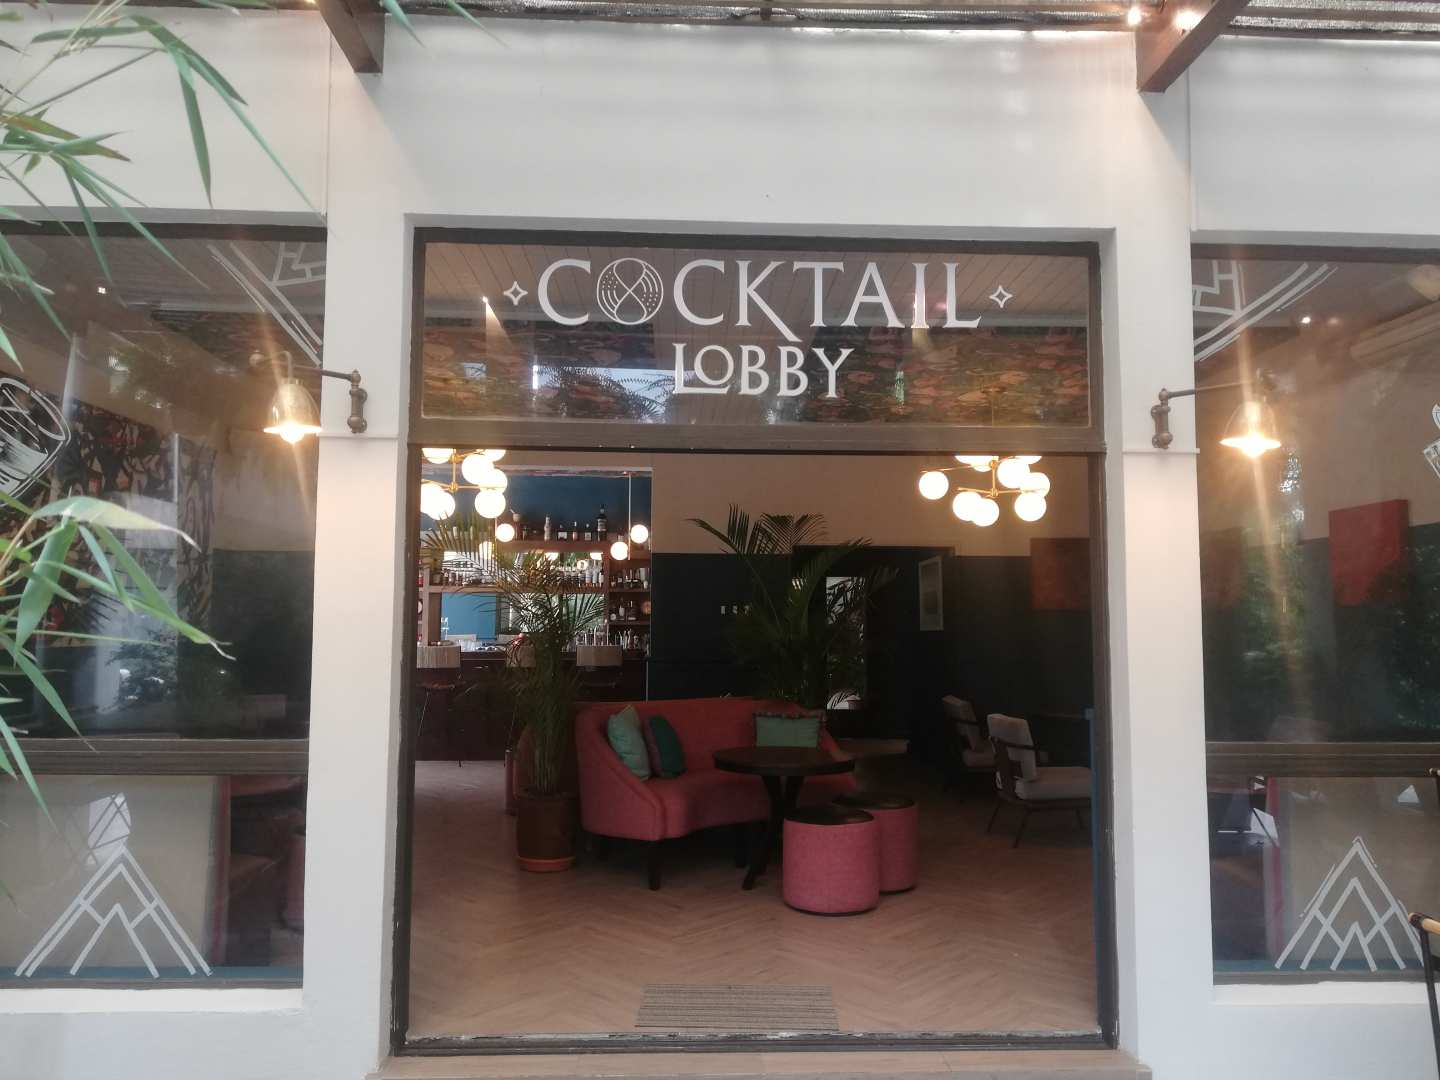 Cocktail Lobby